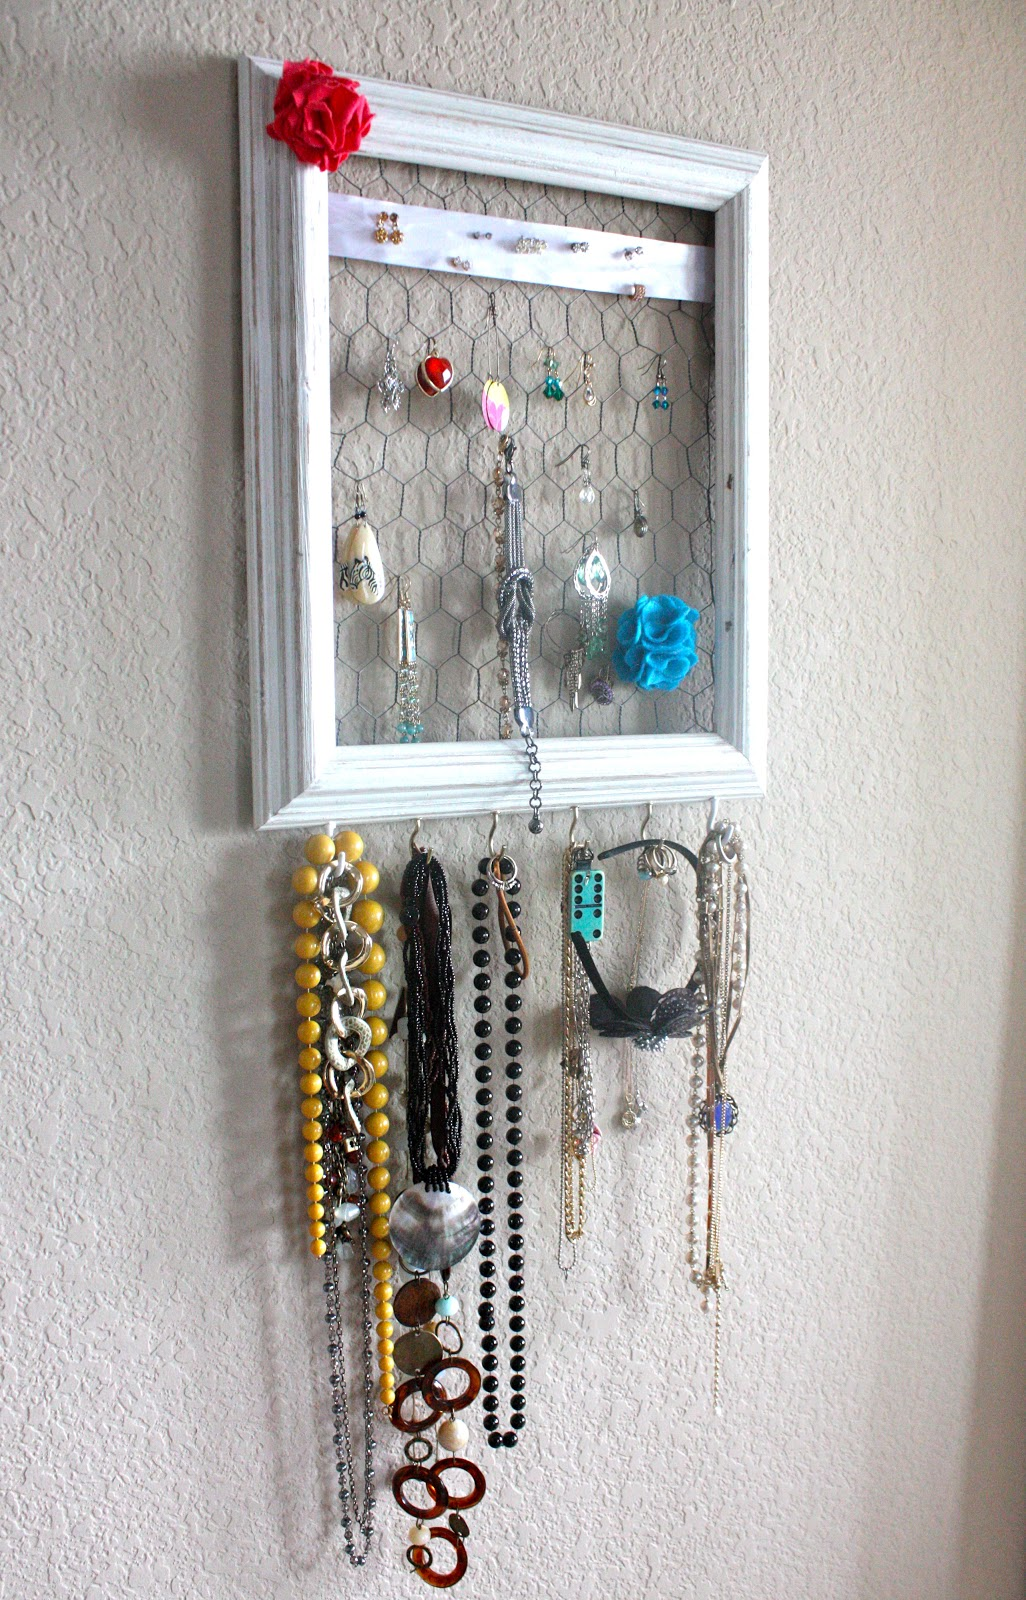 Schmuck Bilderrahmen A Musing Mamma: Photo Frame Jewelry Holder